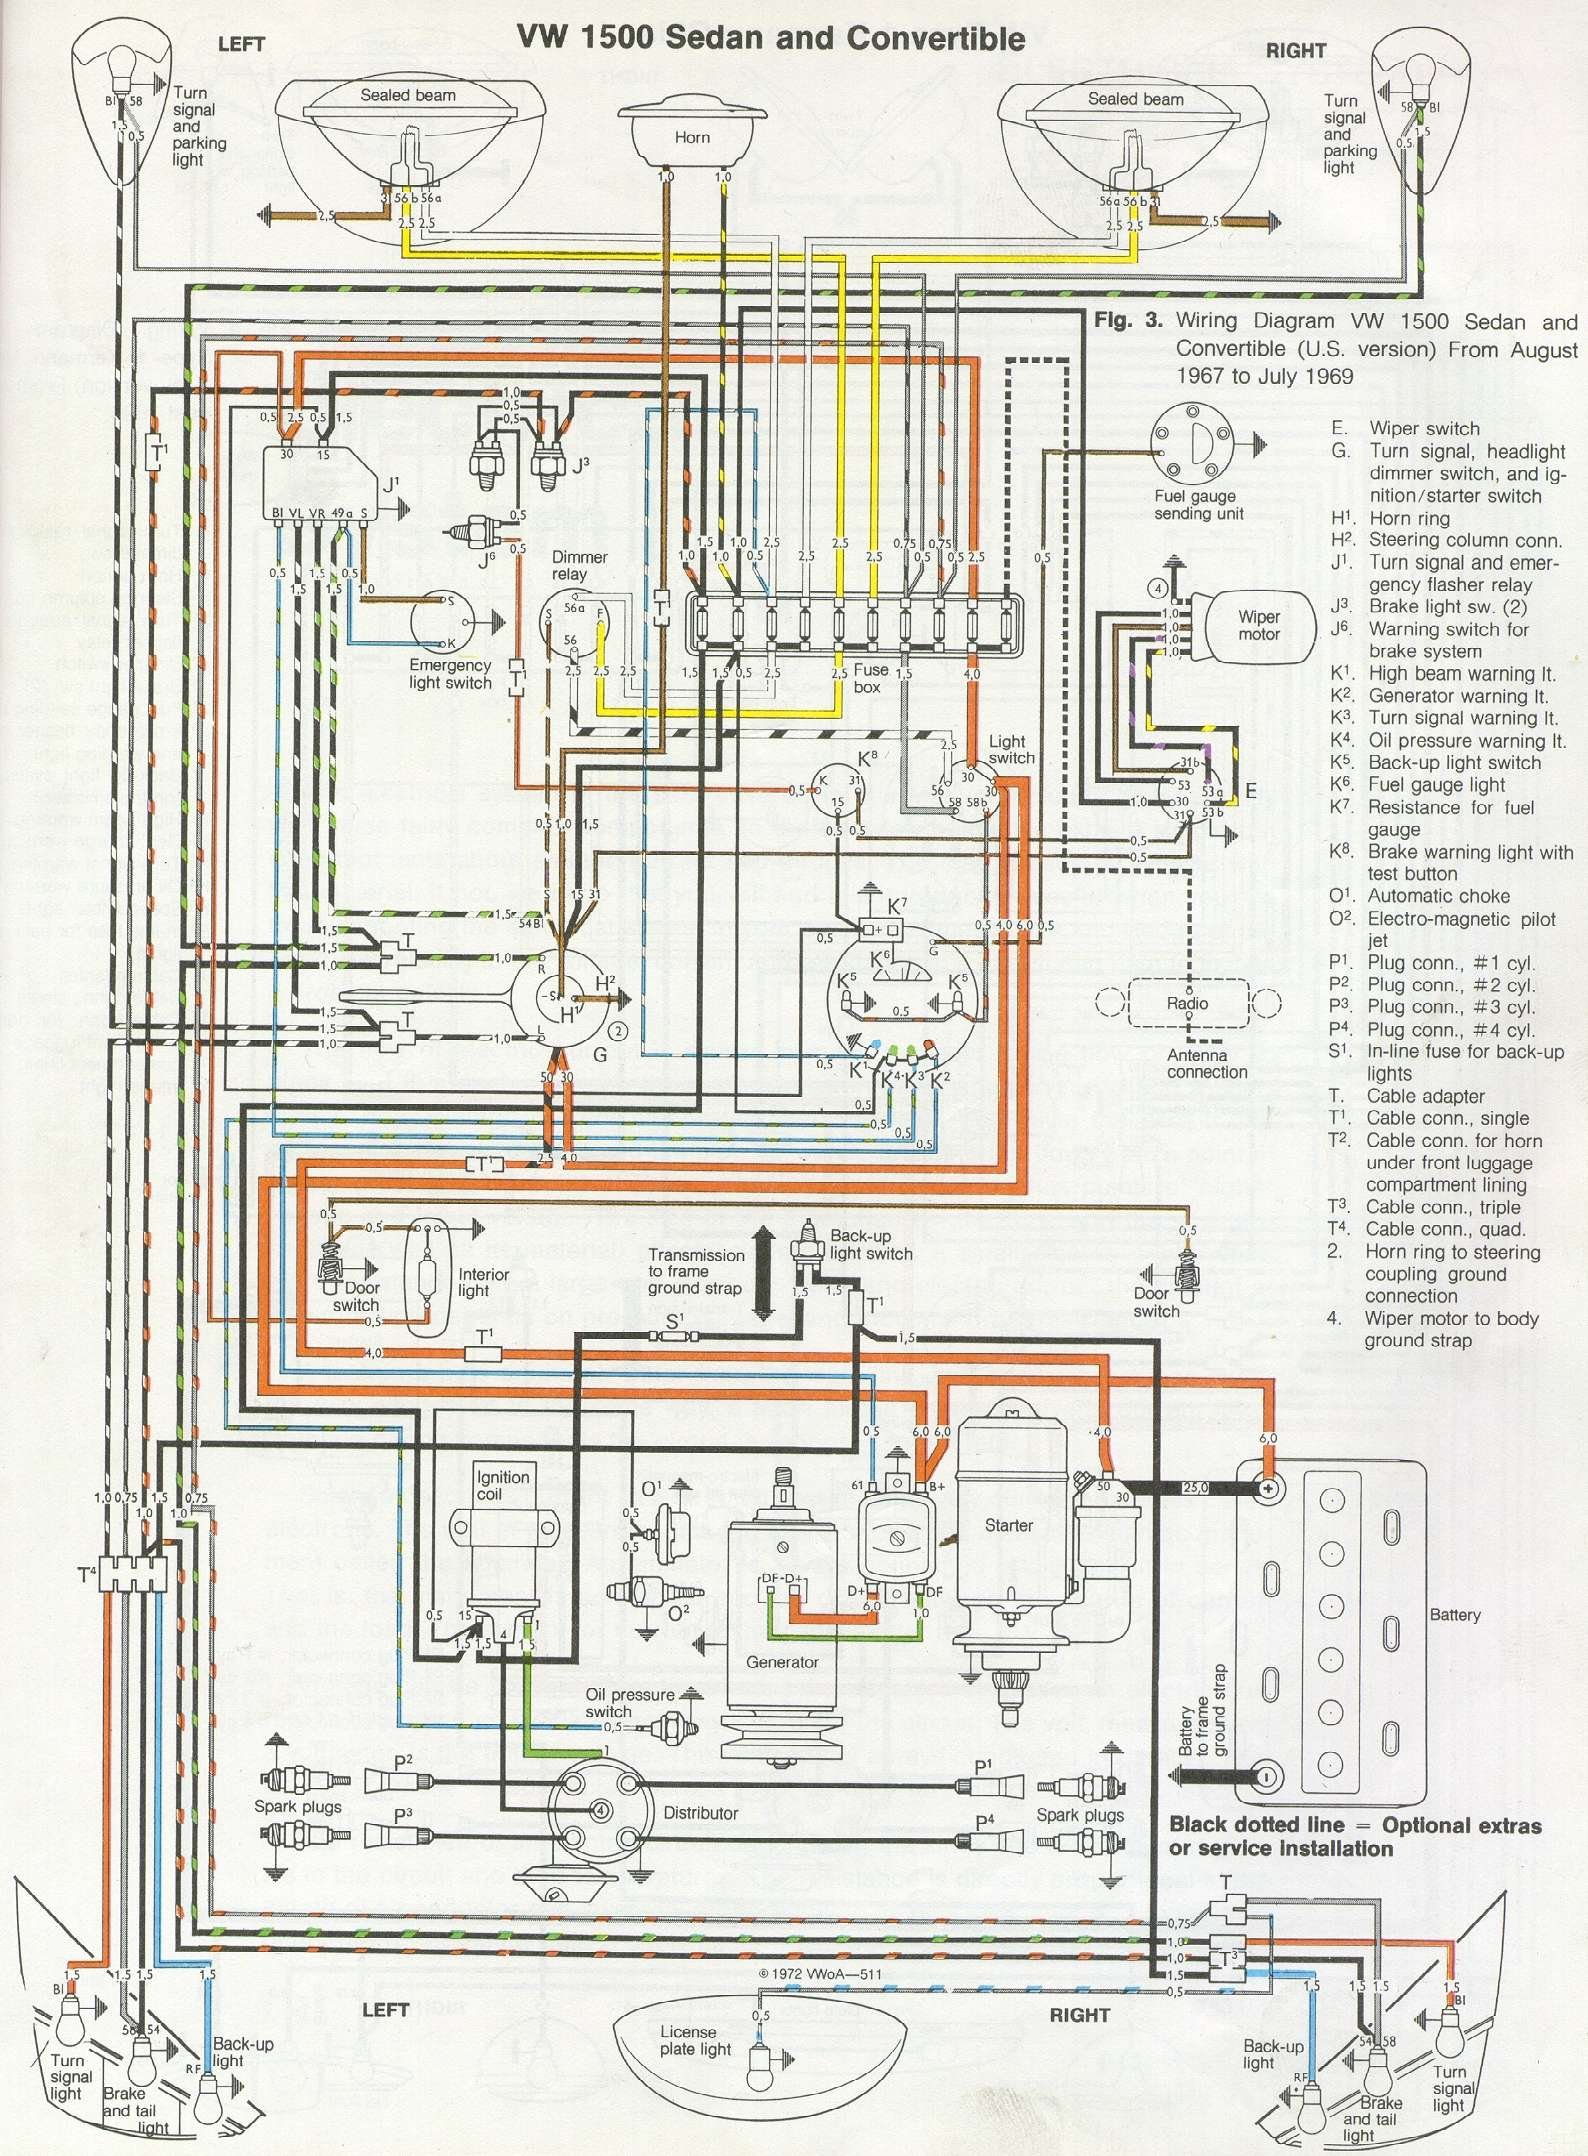 1972 volkswagen super beetle wiring diagram dual battery isolator switch fusca mania clube ce esquema elétrico do atualizado